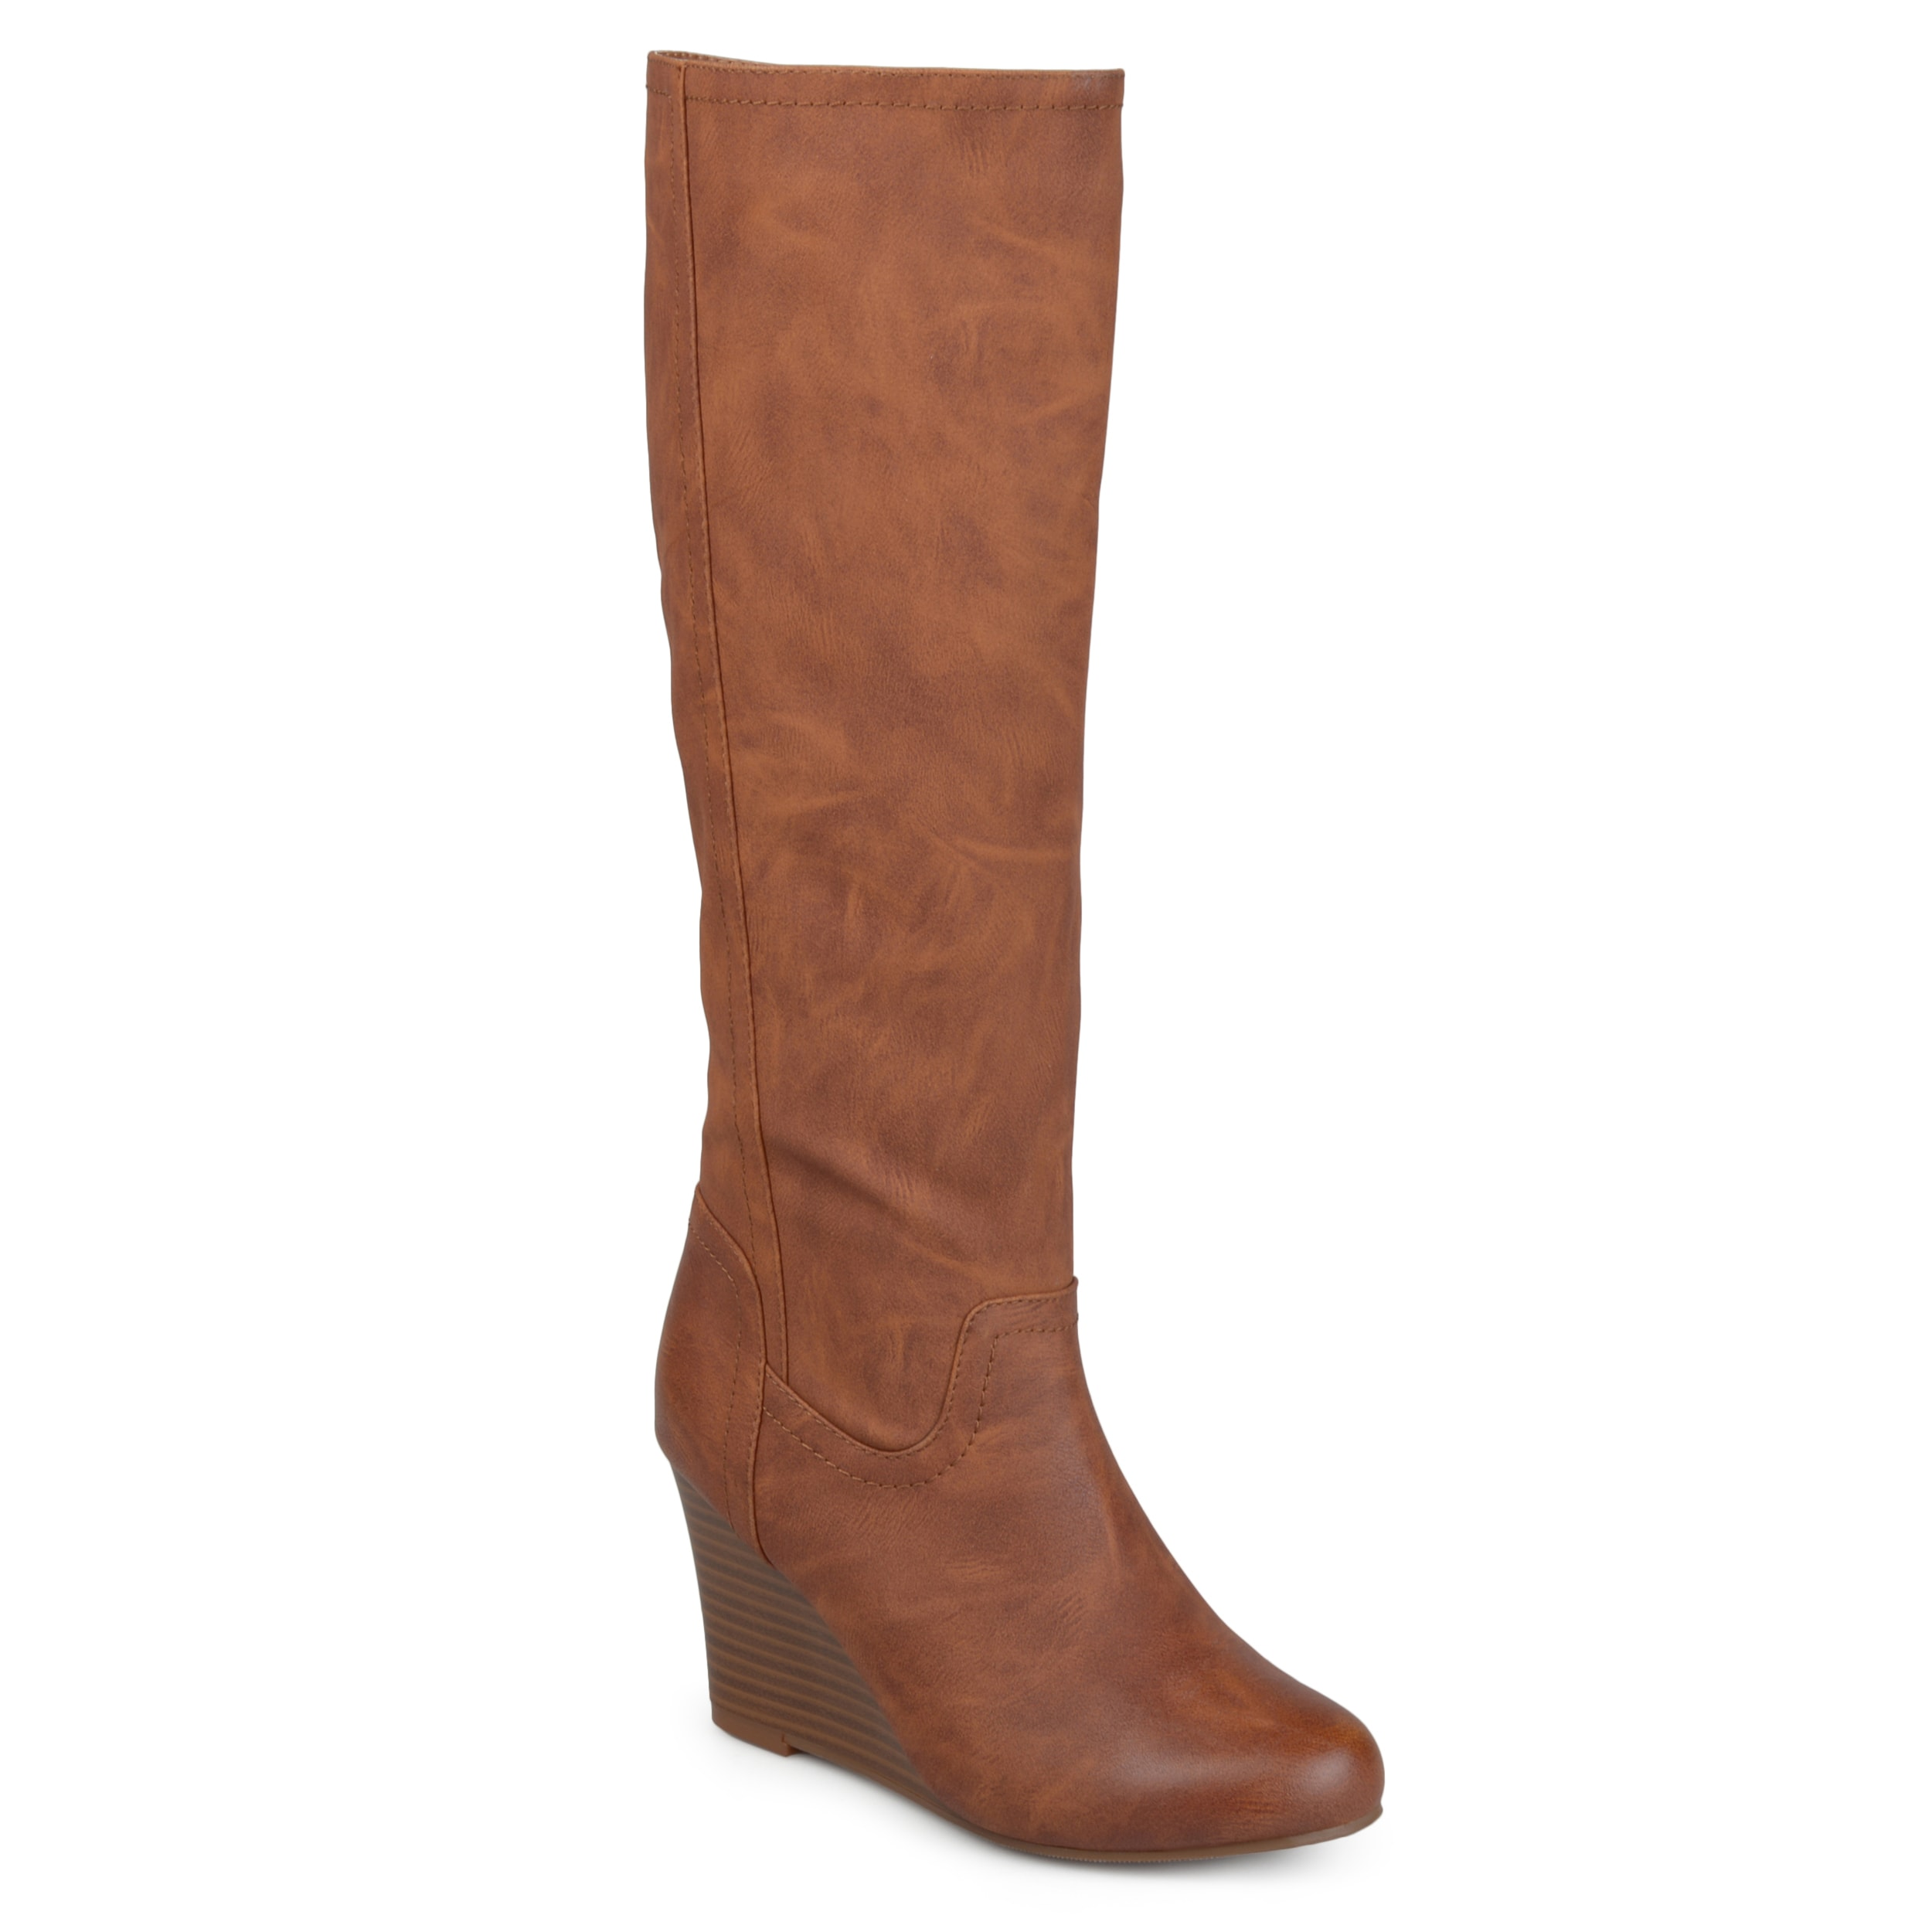 bd5766778668 Journee Collection Women's 'Langly' Regular and Wide Calf Round Toe Mid-calf  Wedge Boots